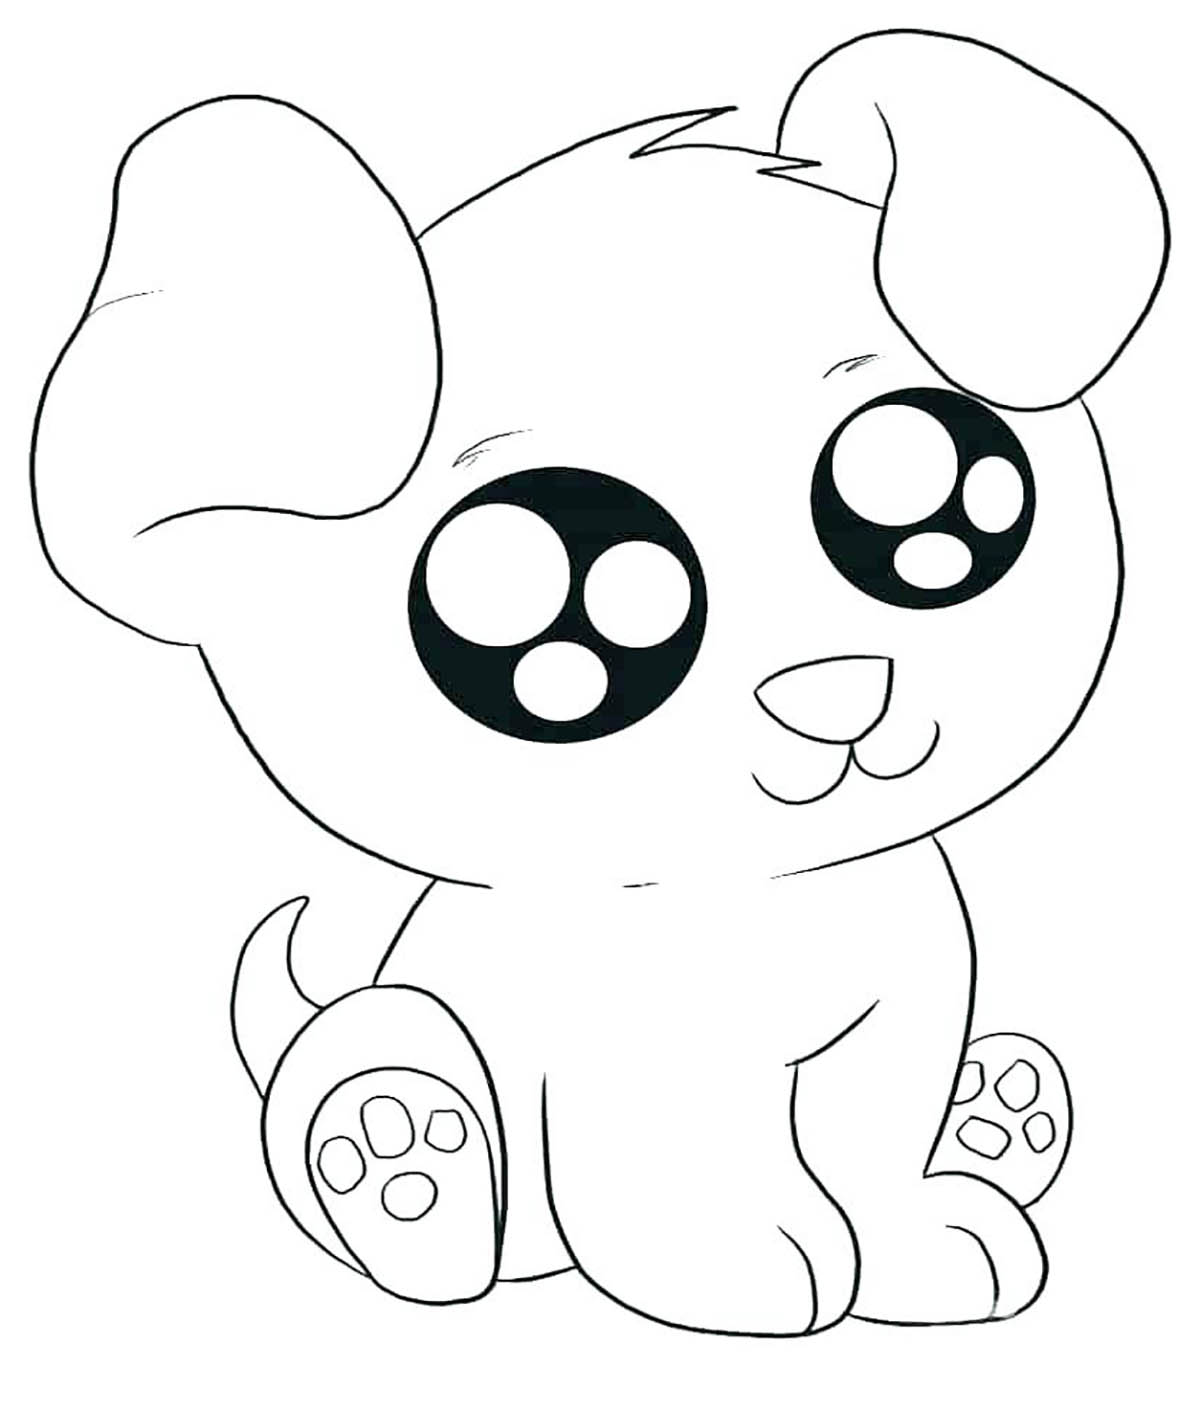 Dogs to print : Kawaï dog - Dogs Kids Coloring Pages